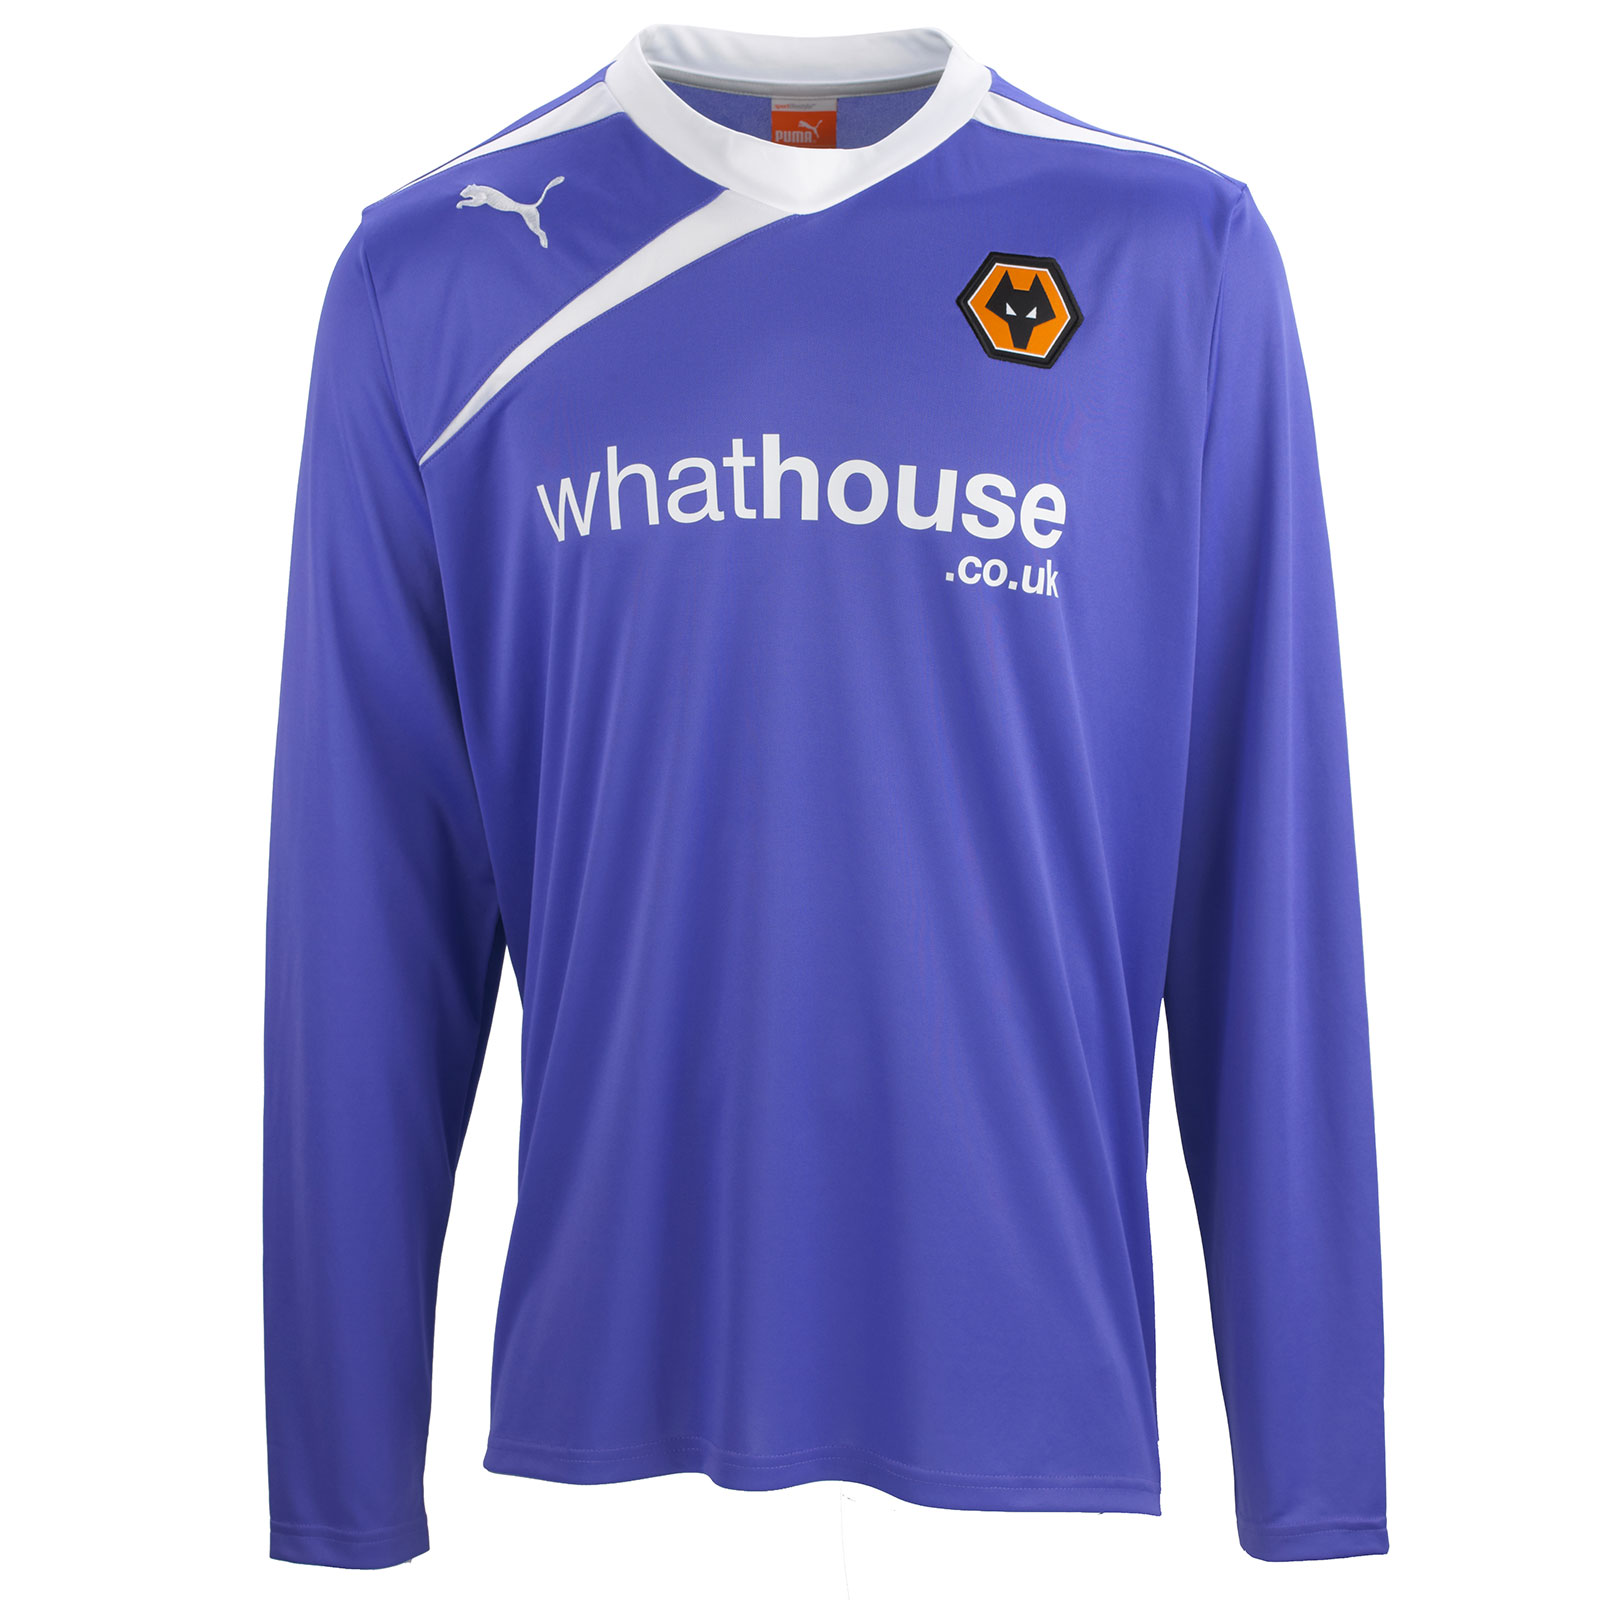 Sale For Puma Wolves 13 14 Home + Away Kits Released b58b9388e